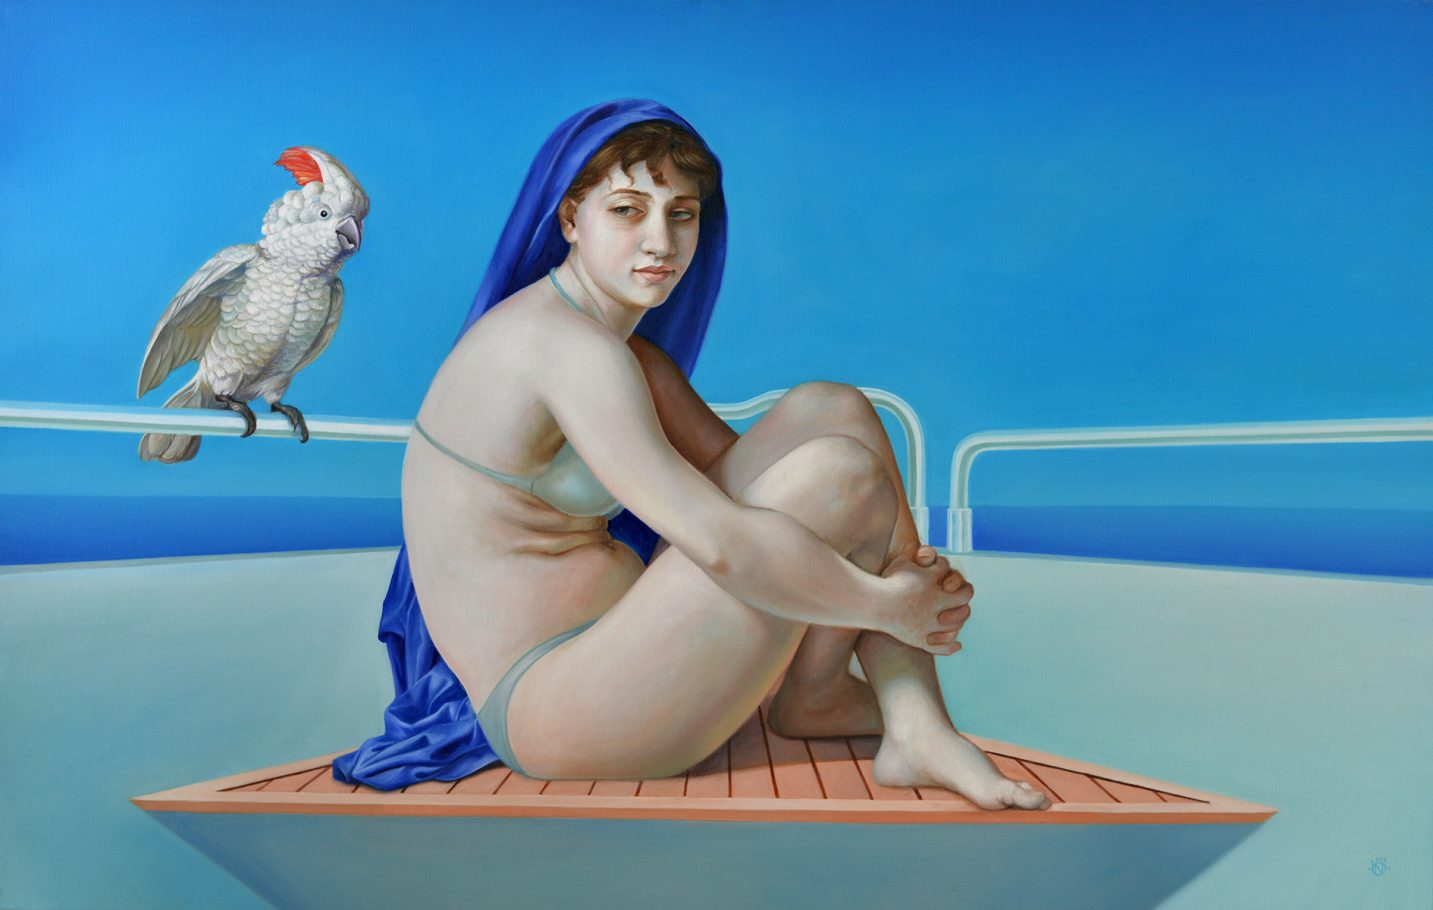 Titania and the cockatoo 90x140 cm oil on canvas 2017